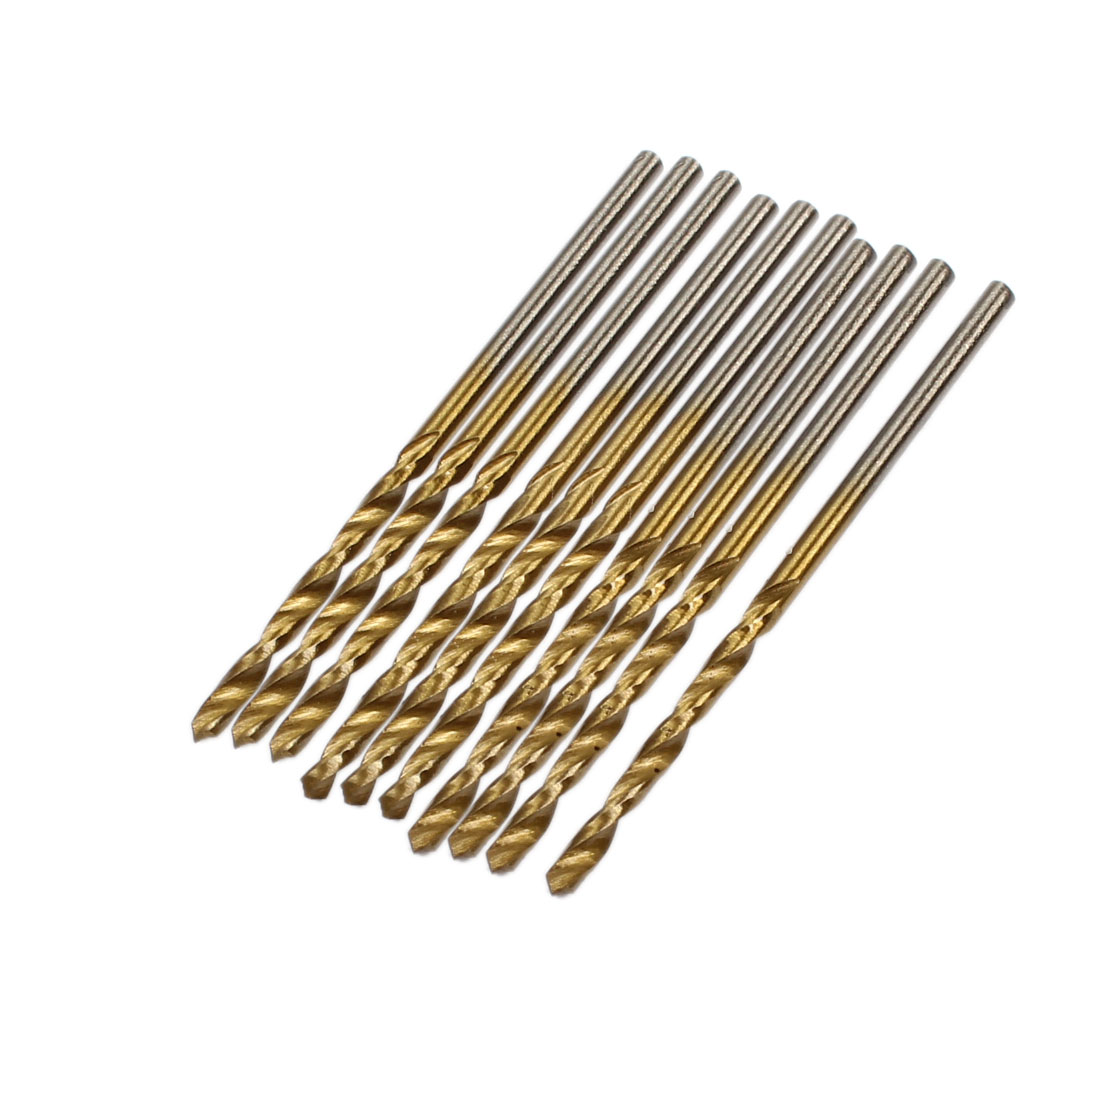 10 Pieces 48mm Length 2mm Diameter Twist Drill Bit with Straight Shank